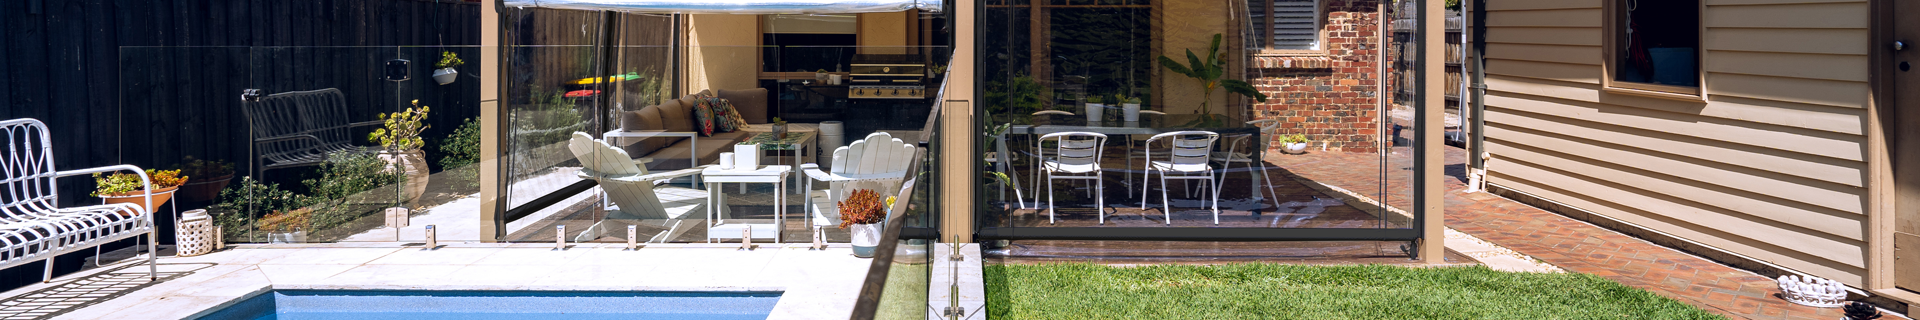 Outdoor entertaining area with clear roller blinds.